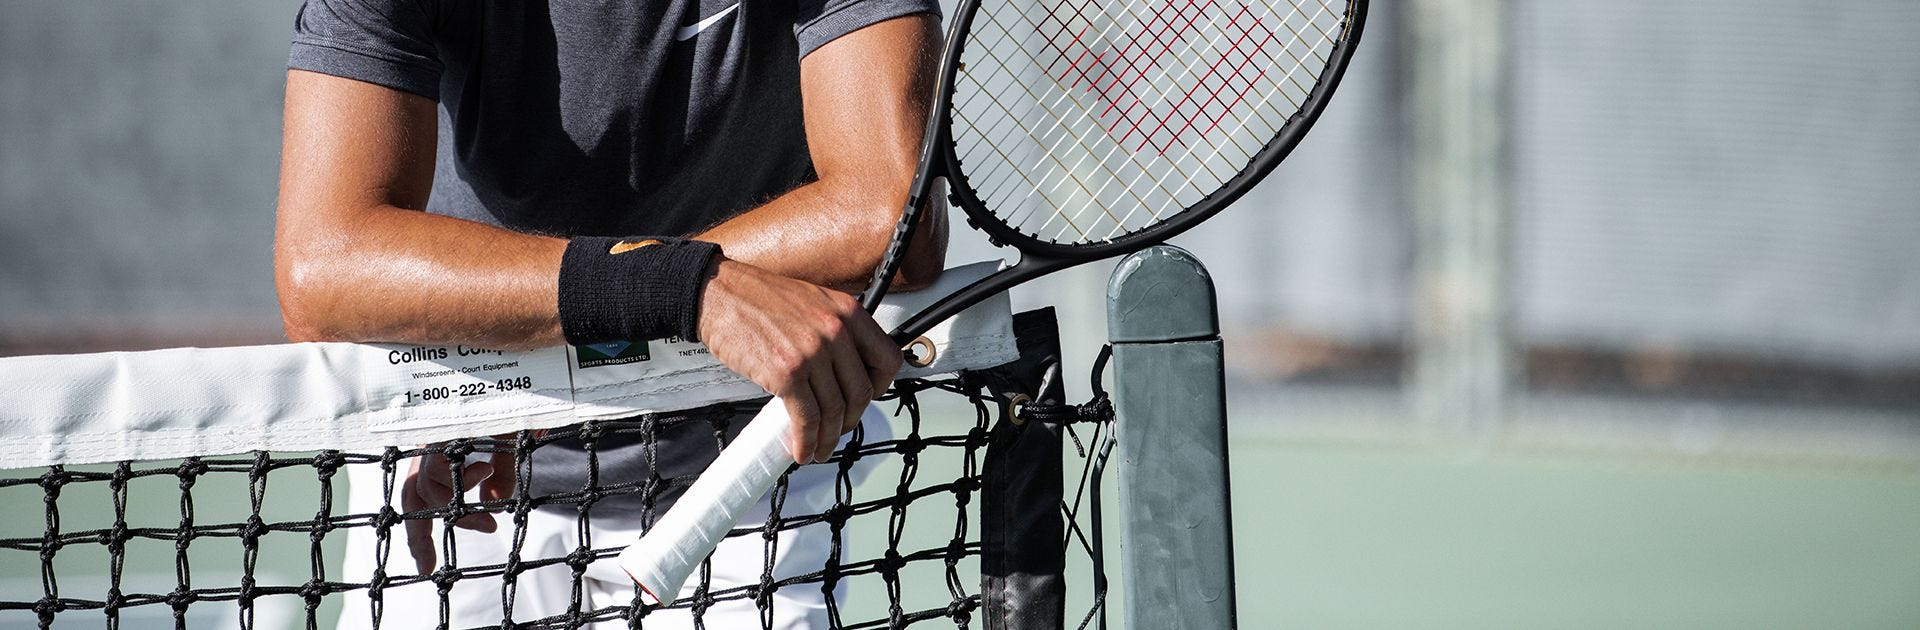 close-up of a player gripping  their racket on court